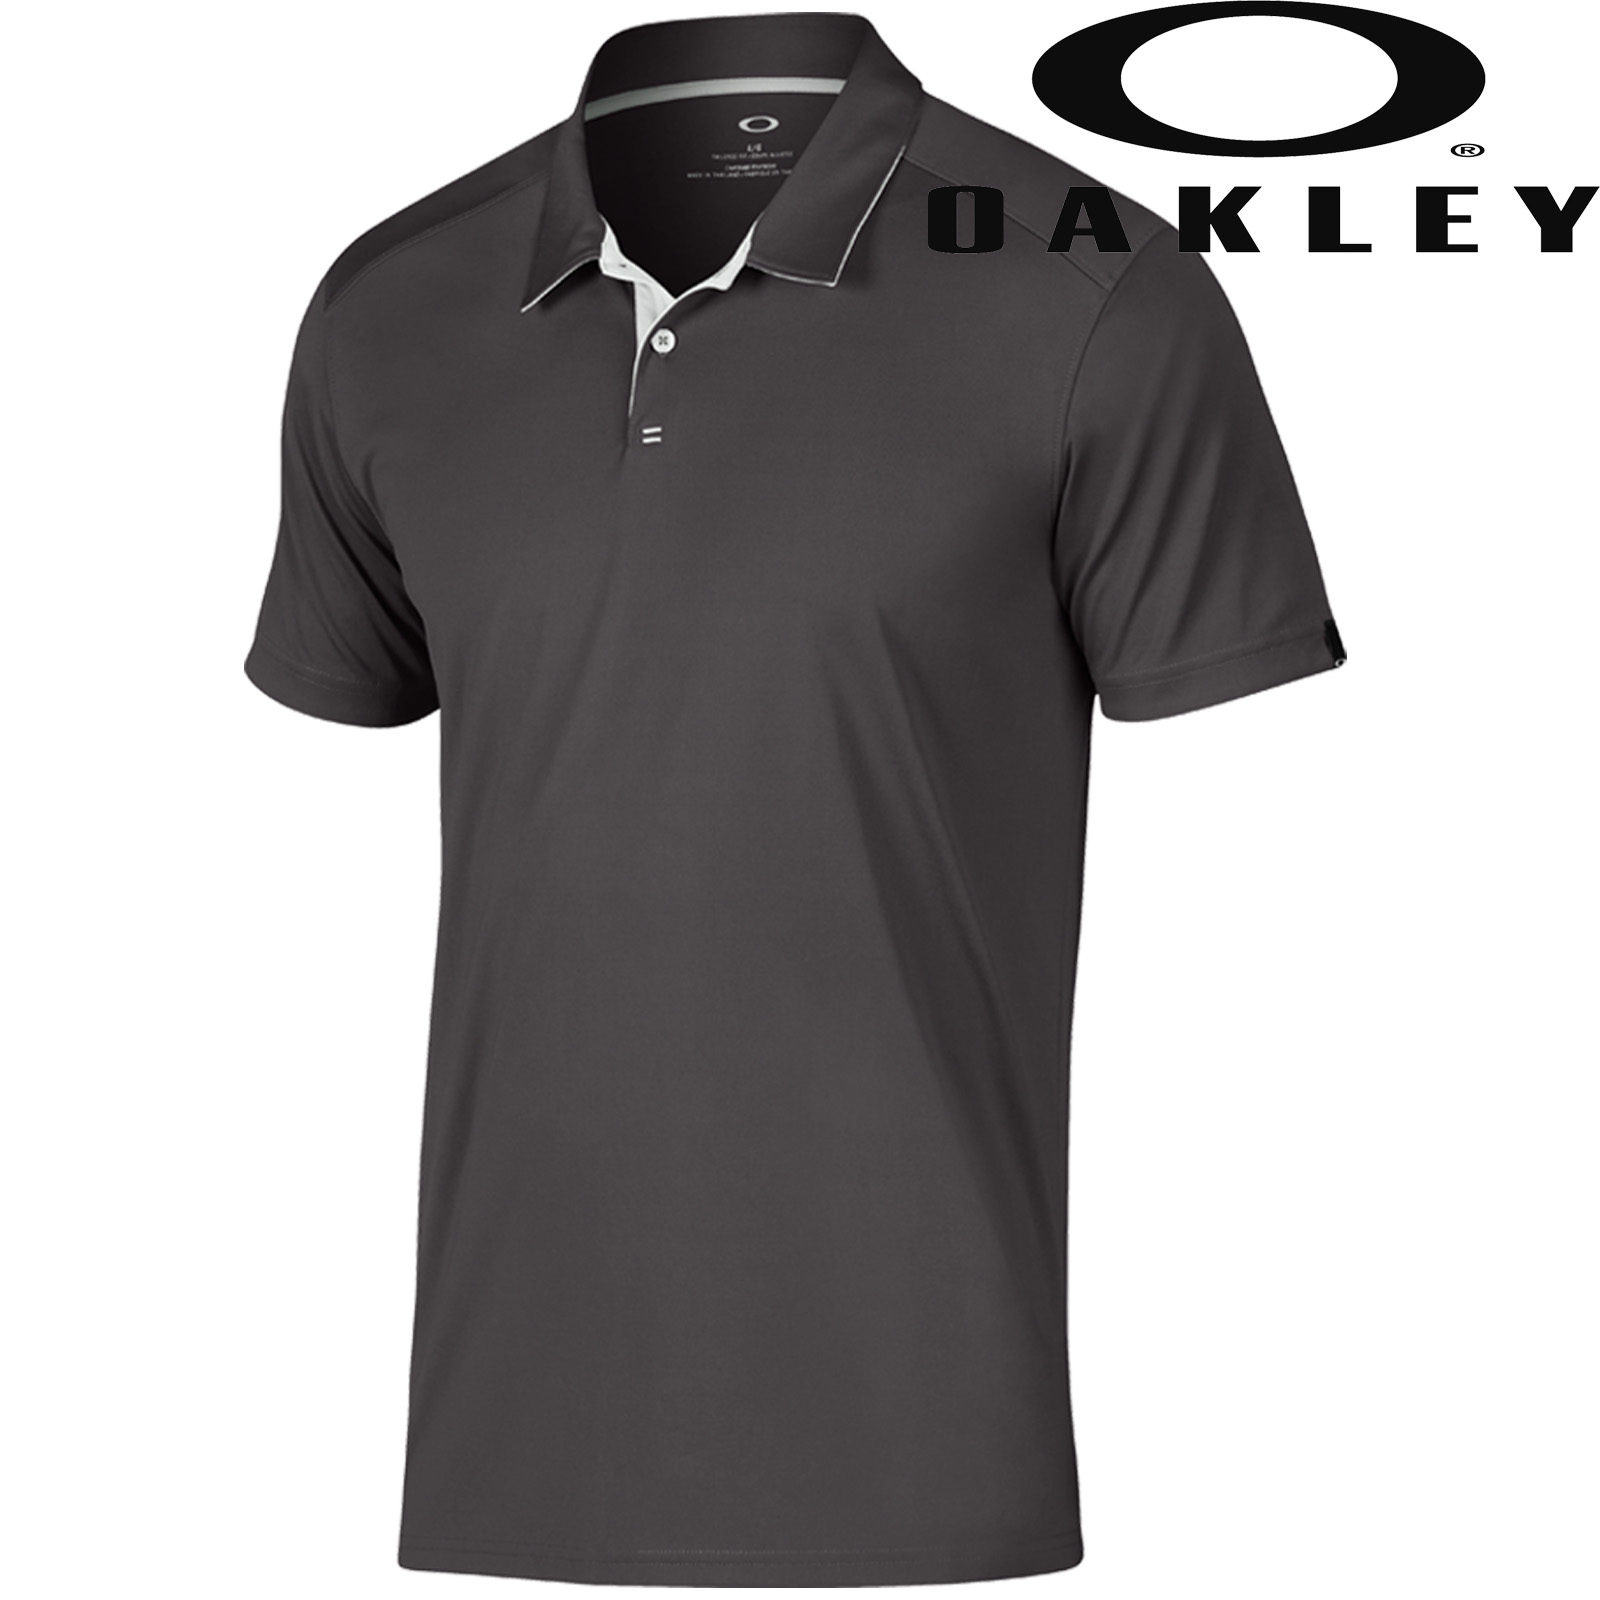 new 2018 oakley mens divisional performance tailored fit golf polo shirt ebay. Black Bedroom Furniture Sets. Home Design Ideas